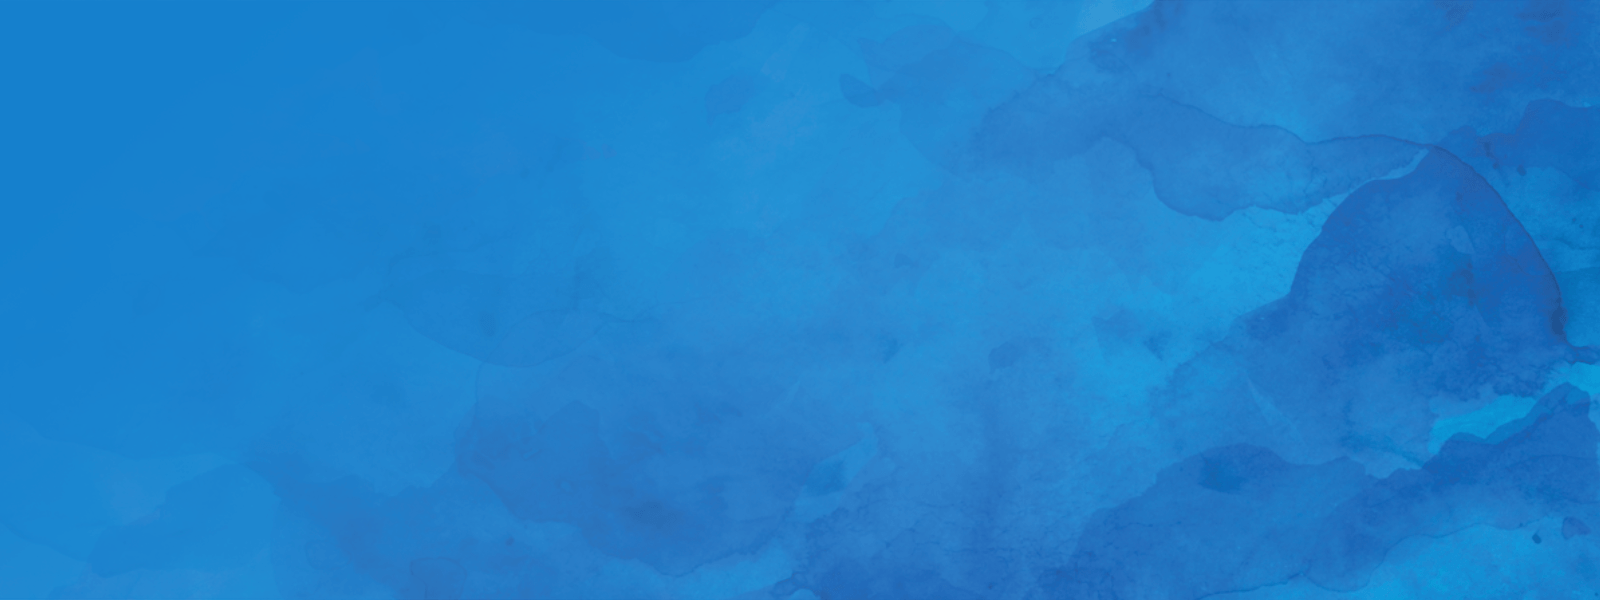 ks-headers-blue